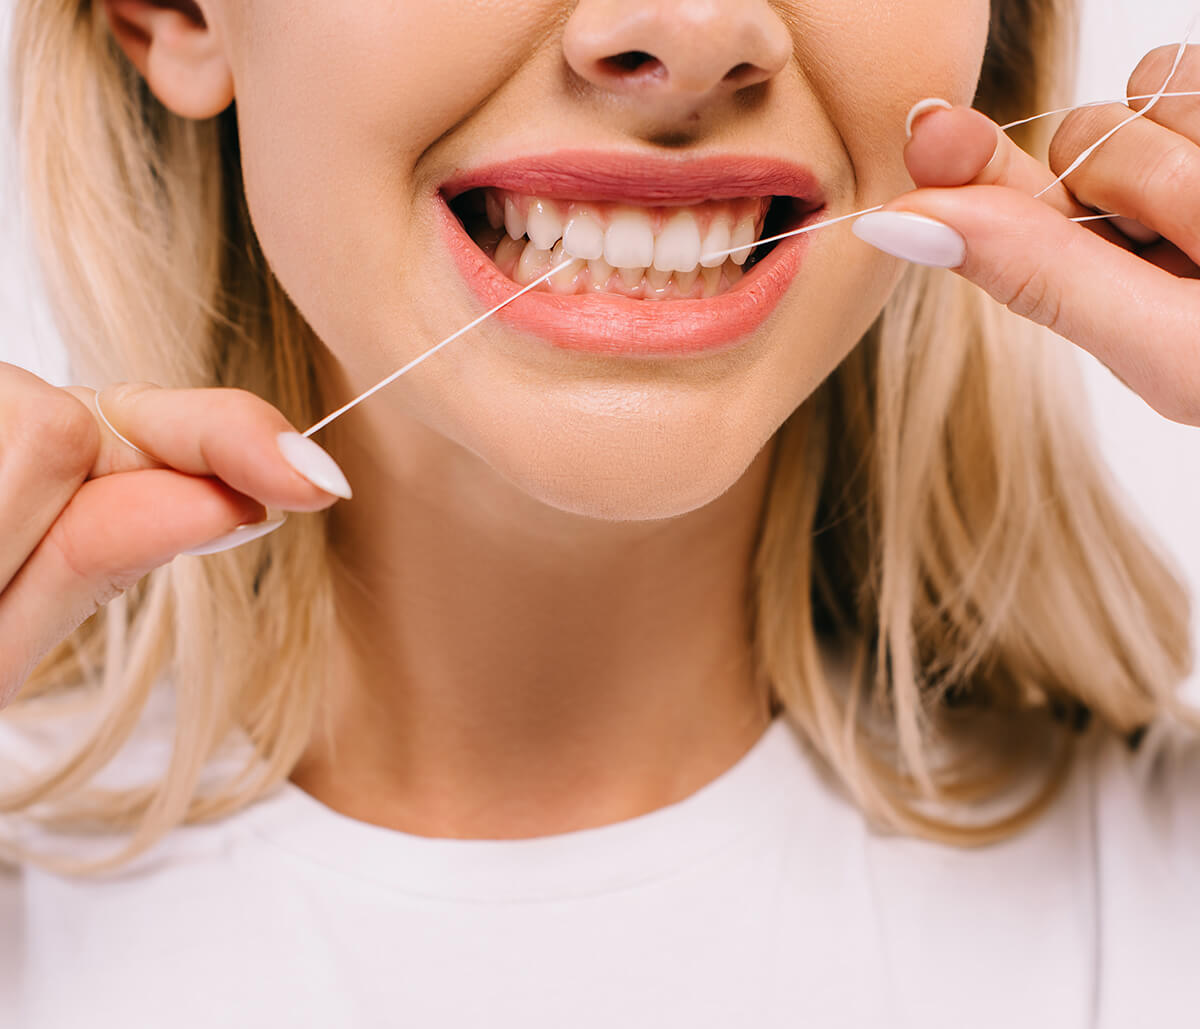 How Best to Care for Your Teeth After Dental Hygiene Service in Milton ON Area